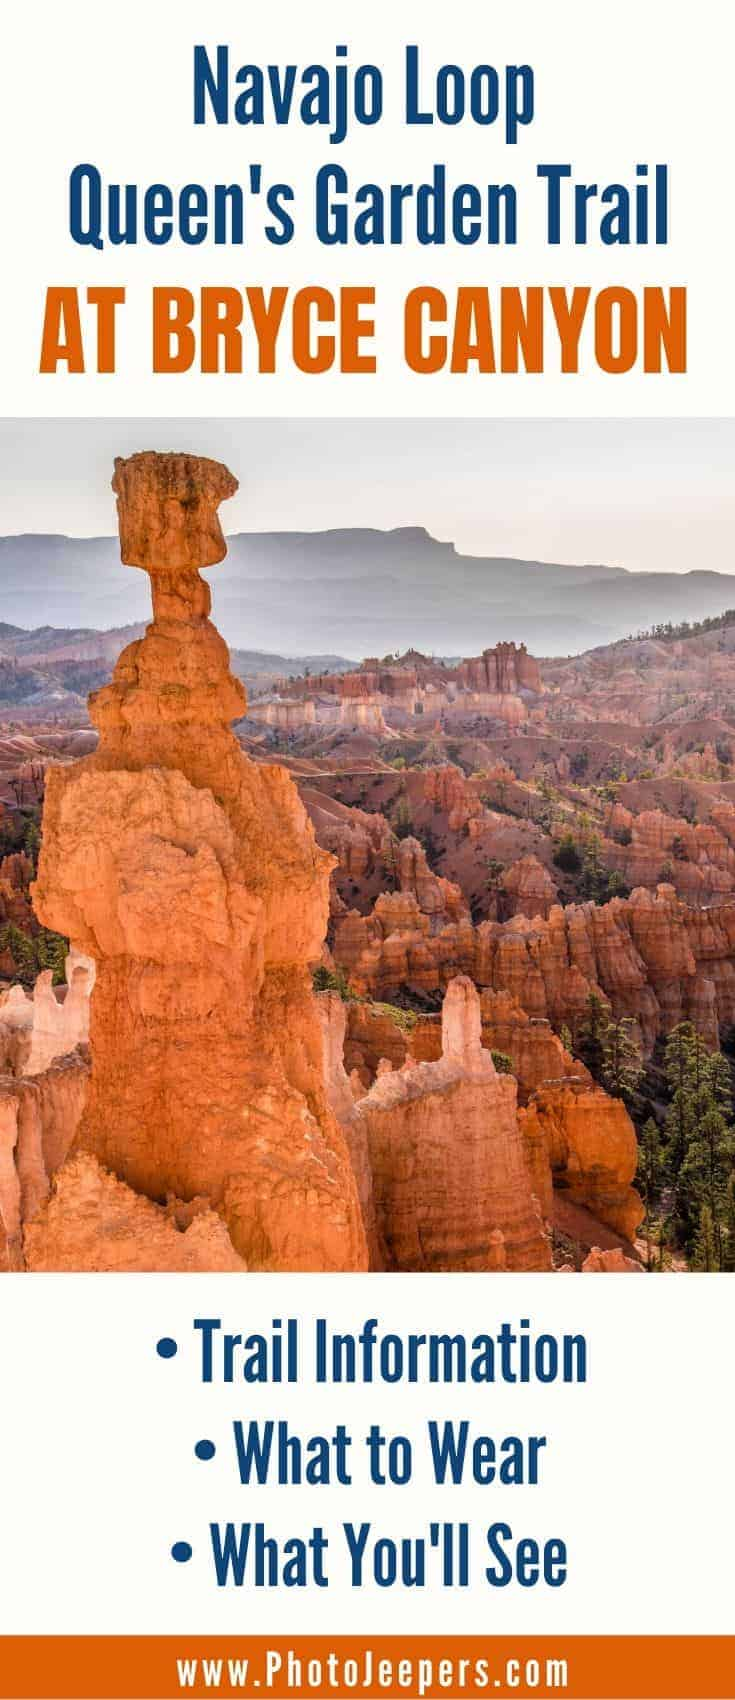 Everything you need to know to hike the Navajo Loop Queen's Garden Trail at Bryce Canyon National Park. Navajo Loop Queen's Garden trail information   What to wear hiking at Bryce Canyon   What you'll see on the Navajo Loop Queen's Garden hiking trail #nationalparks #brycecanyon #utah #hiking #photojeepers